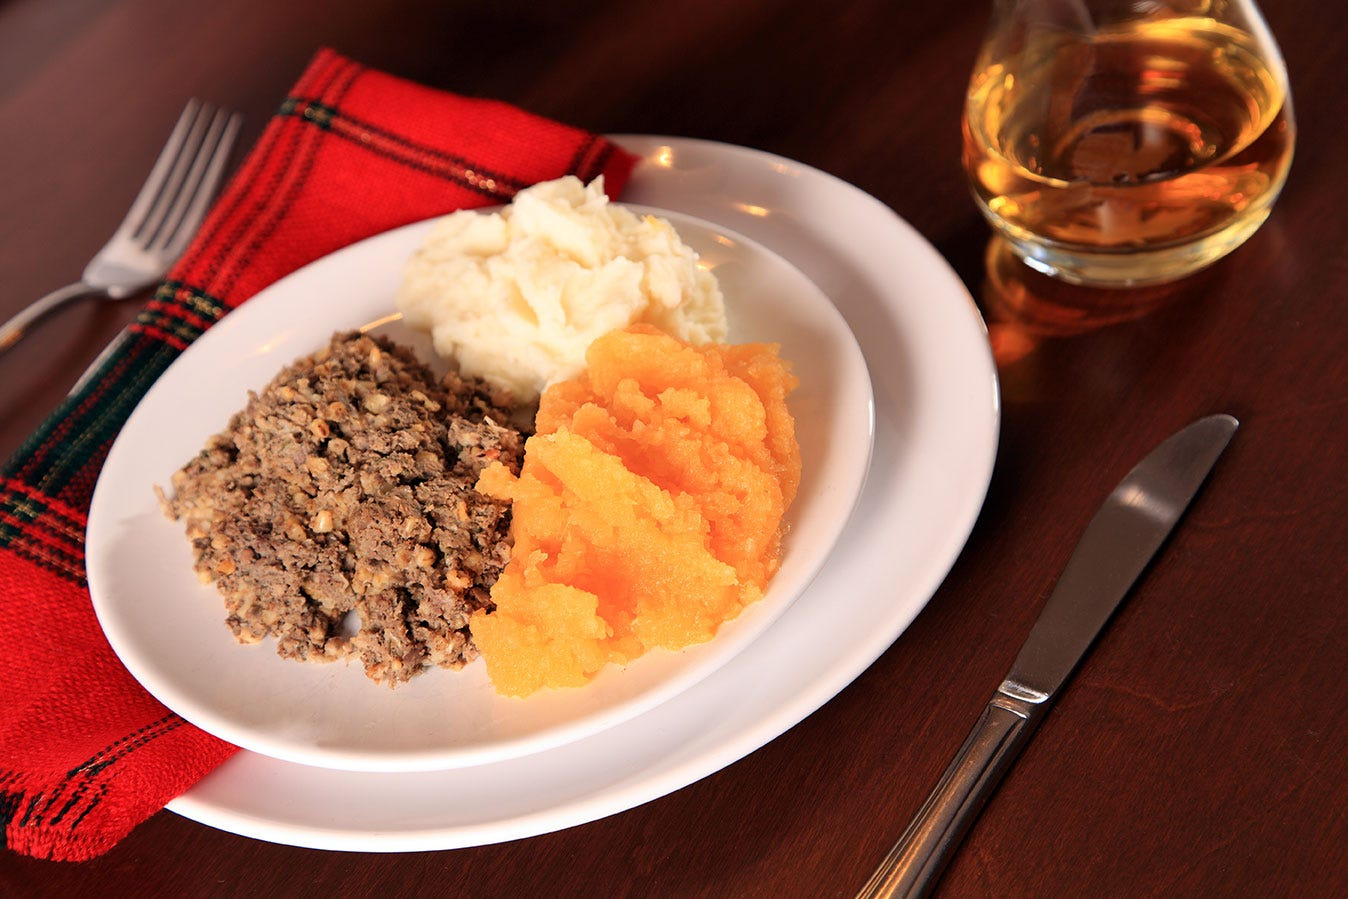 Dinner of haggis served with neeps, tatties and whiskey